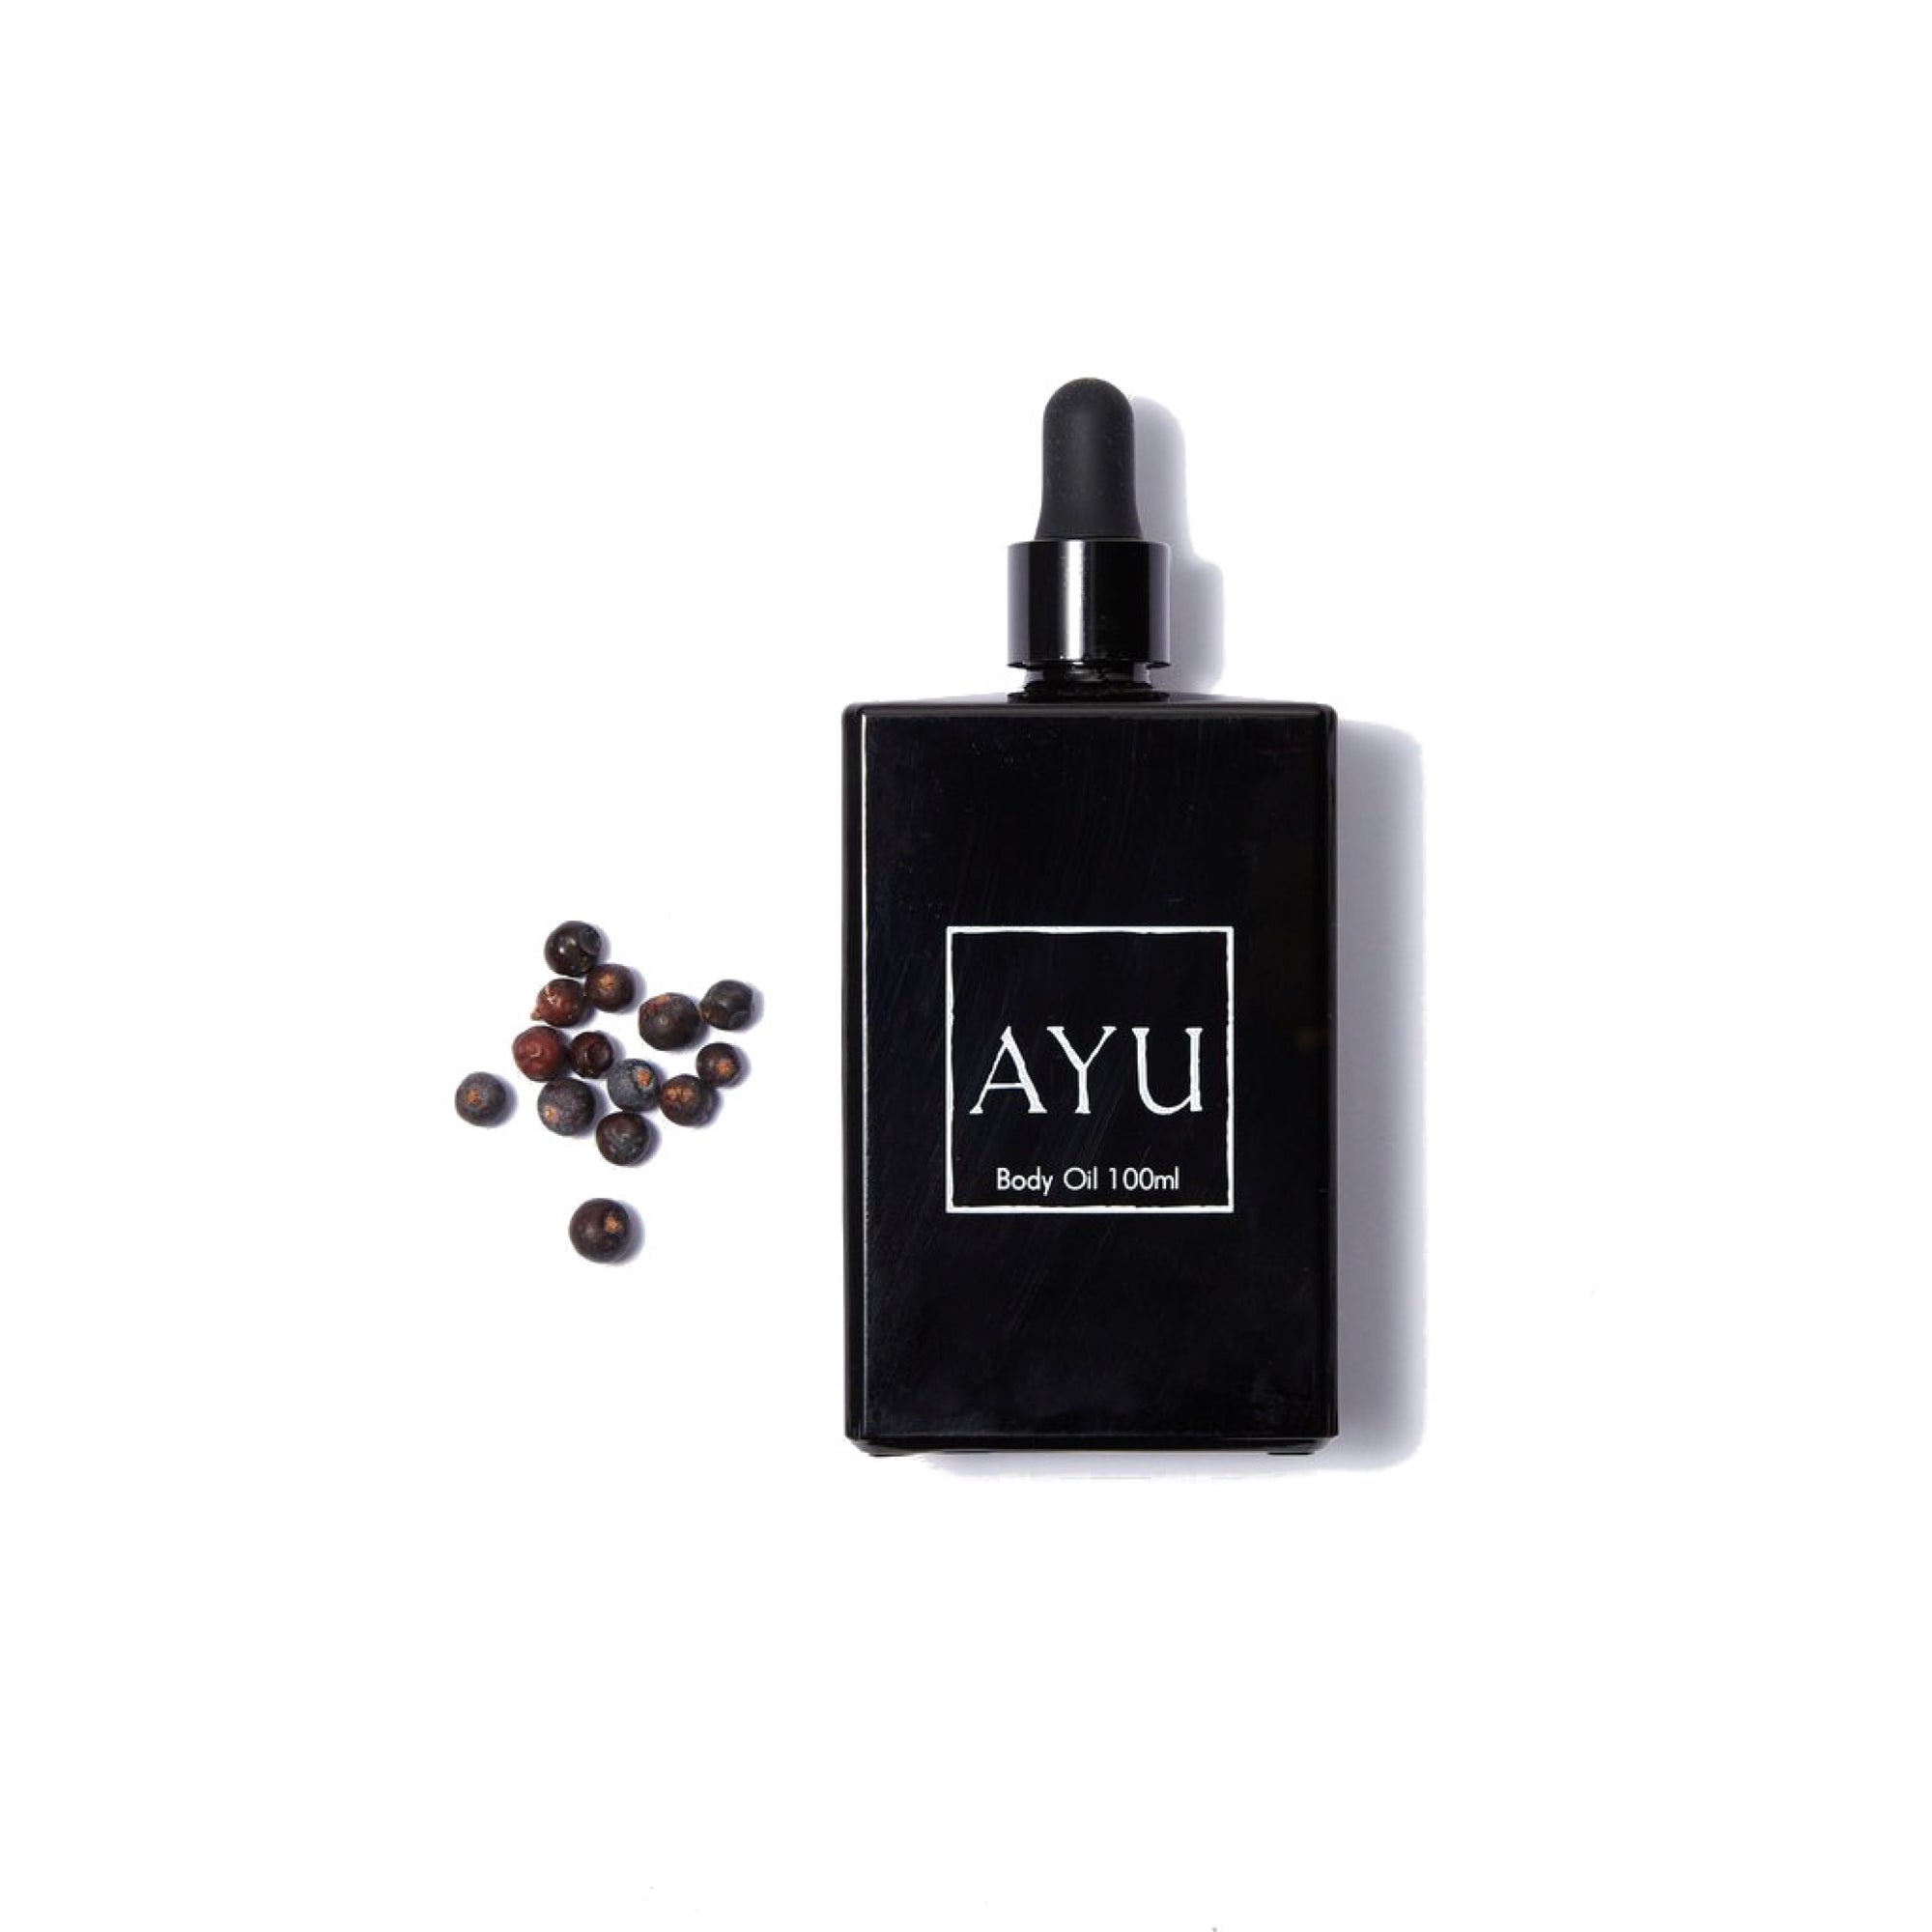 AYU Body Oil 100ml- Juniper Berry, Petitgrain & Vetiver